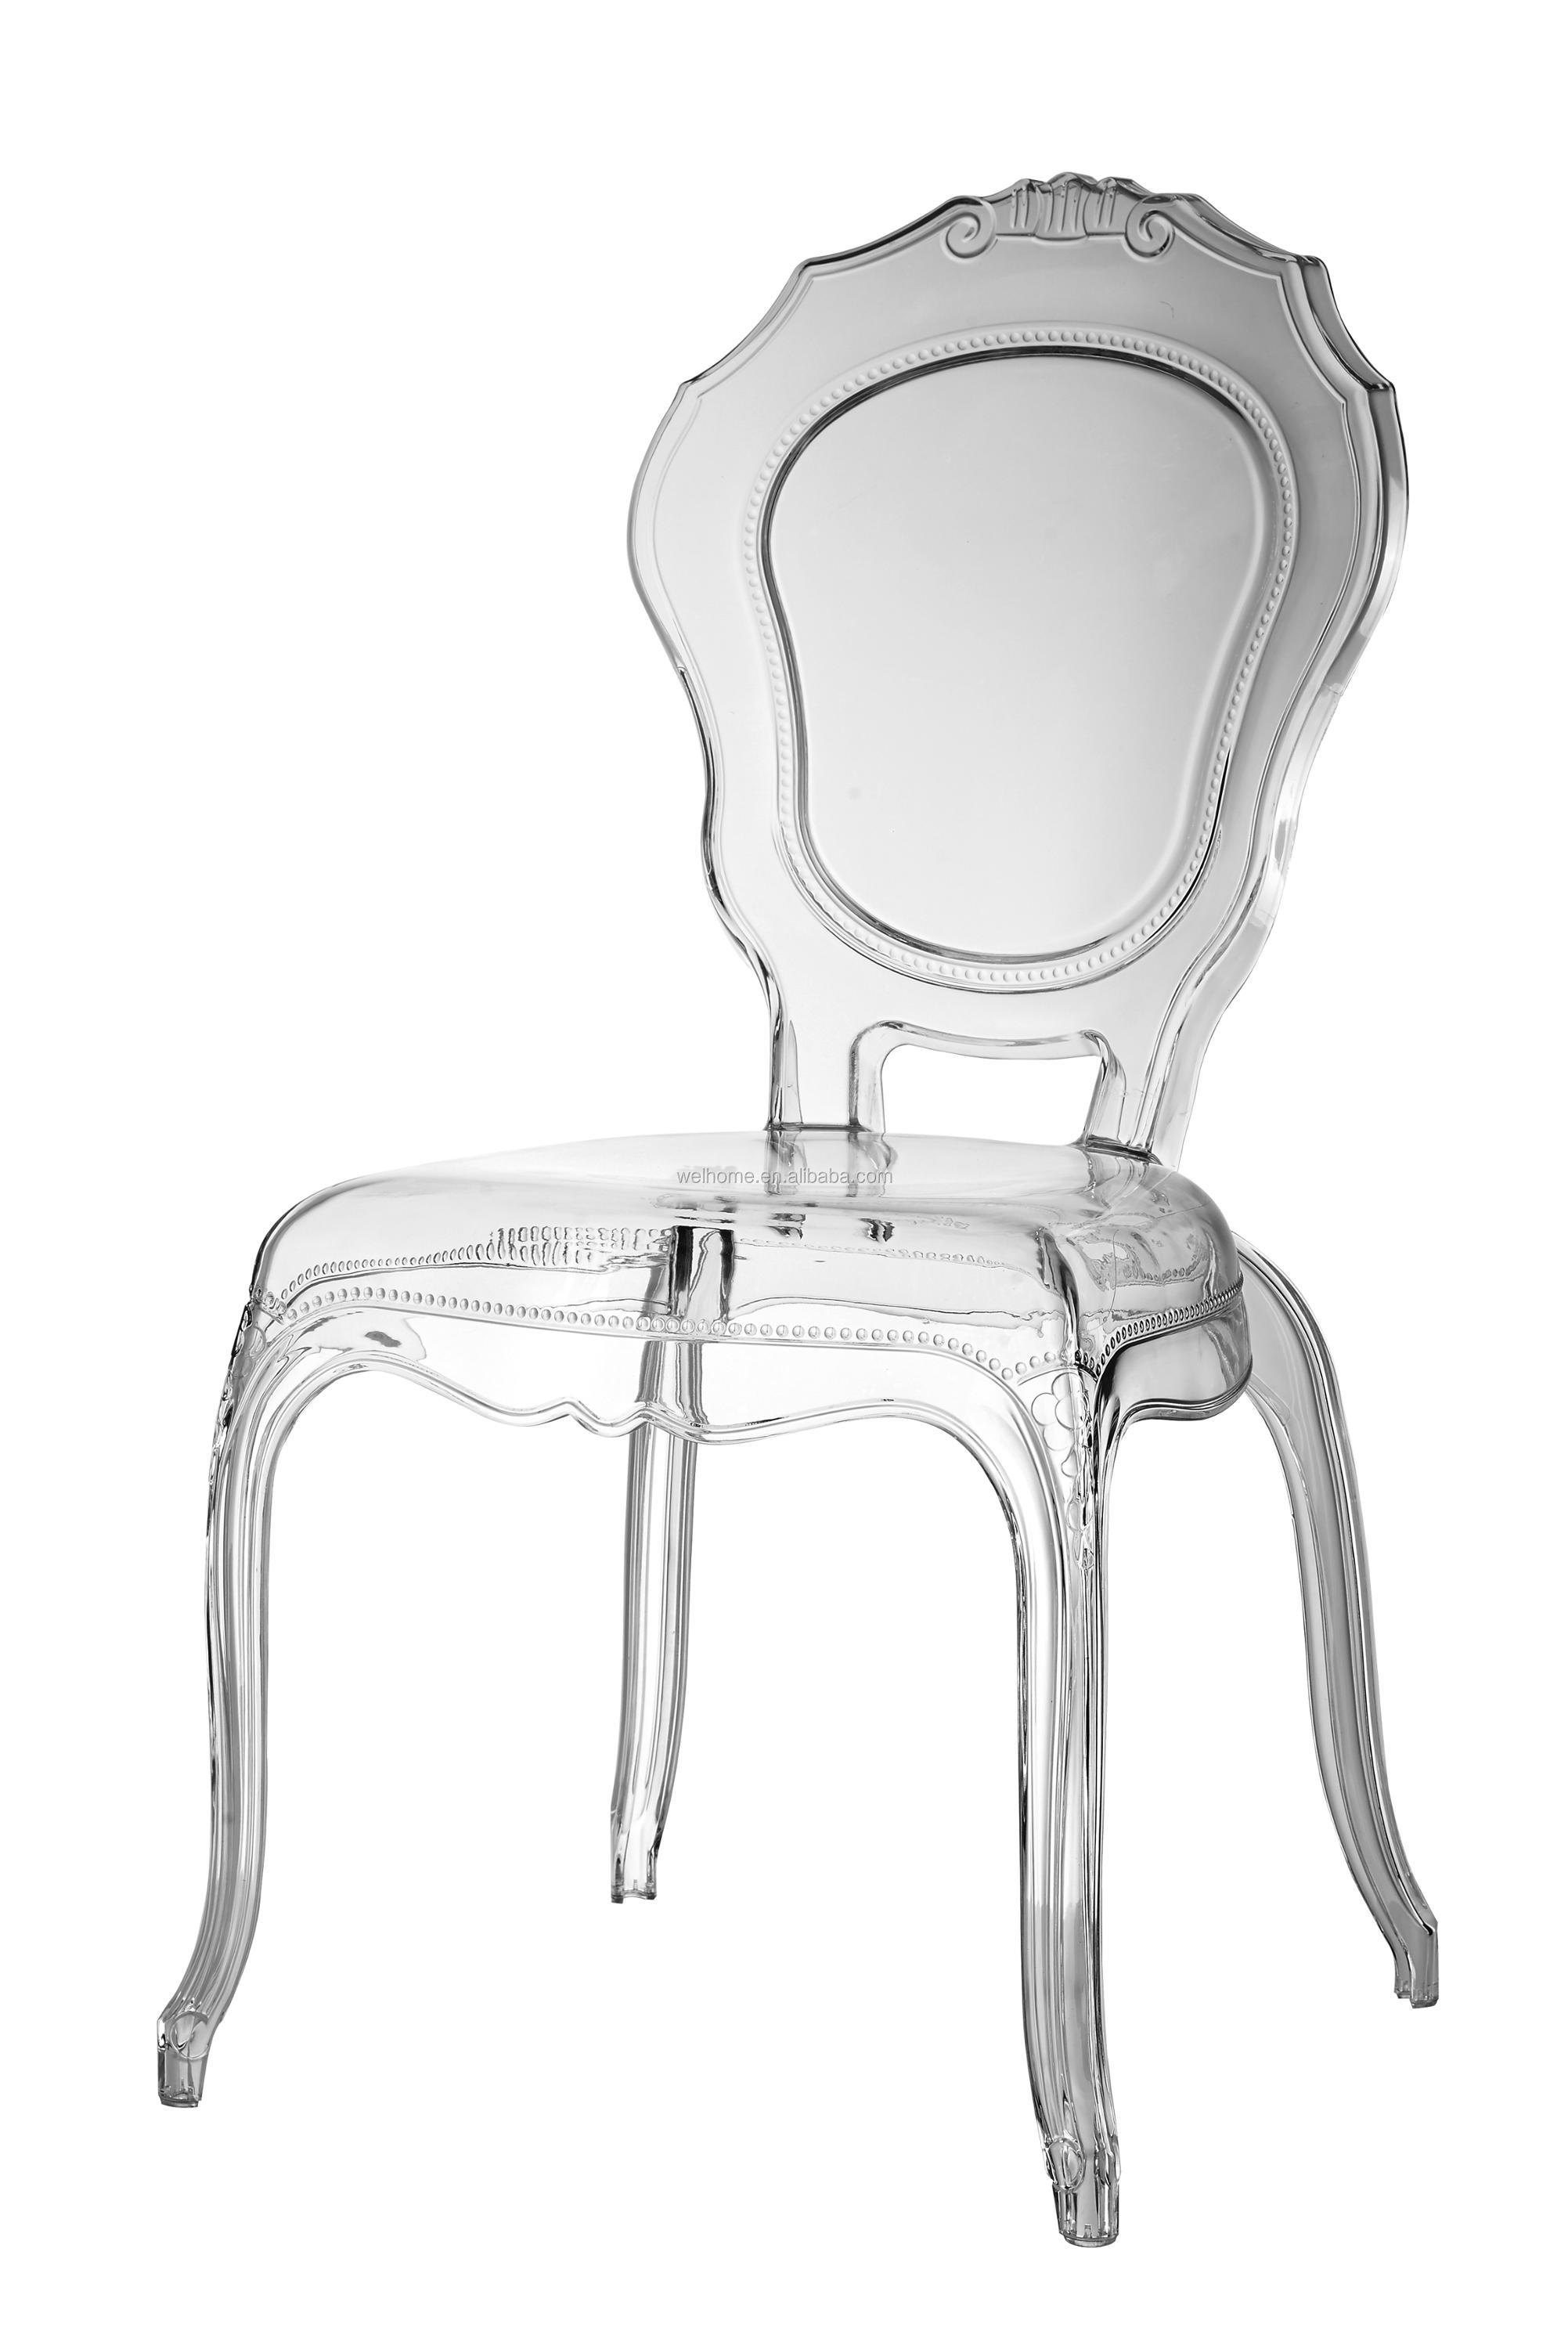 Pc Acylic Outdoor Party Event White Belle Epoque Wedding Chairs